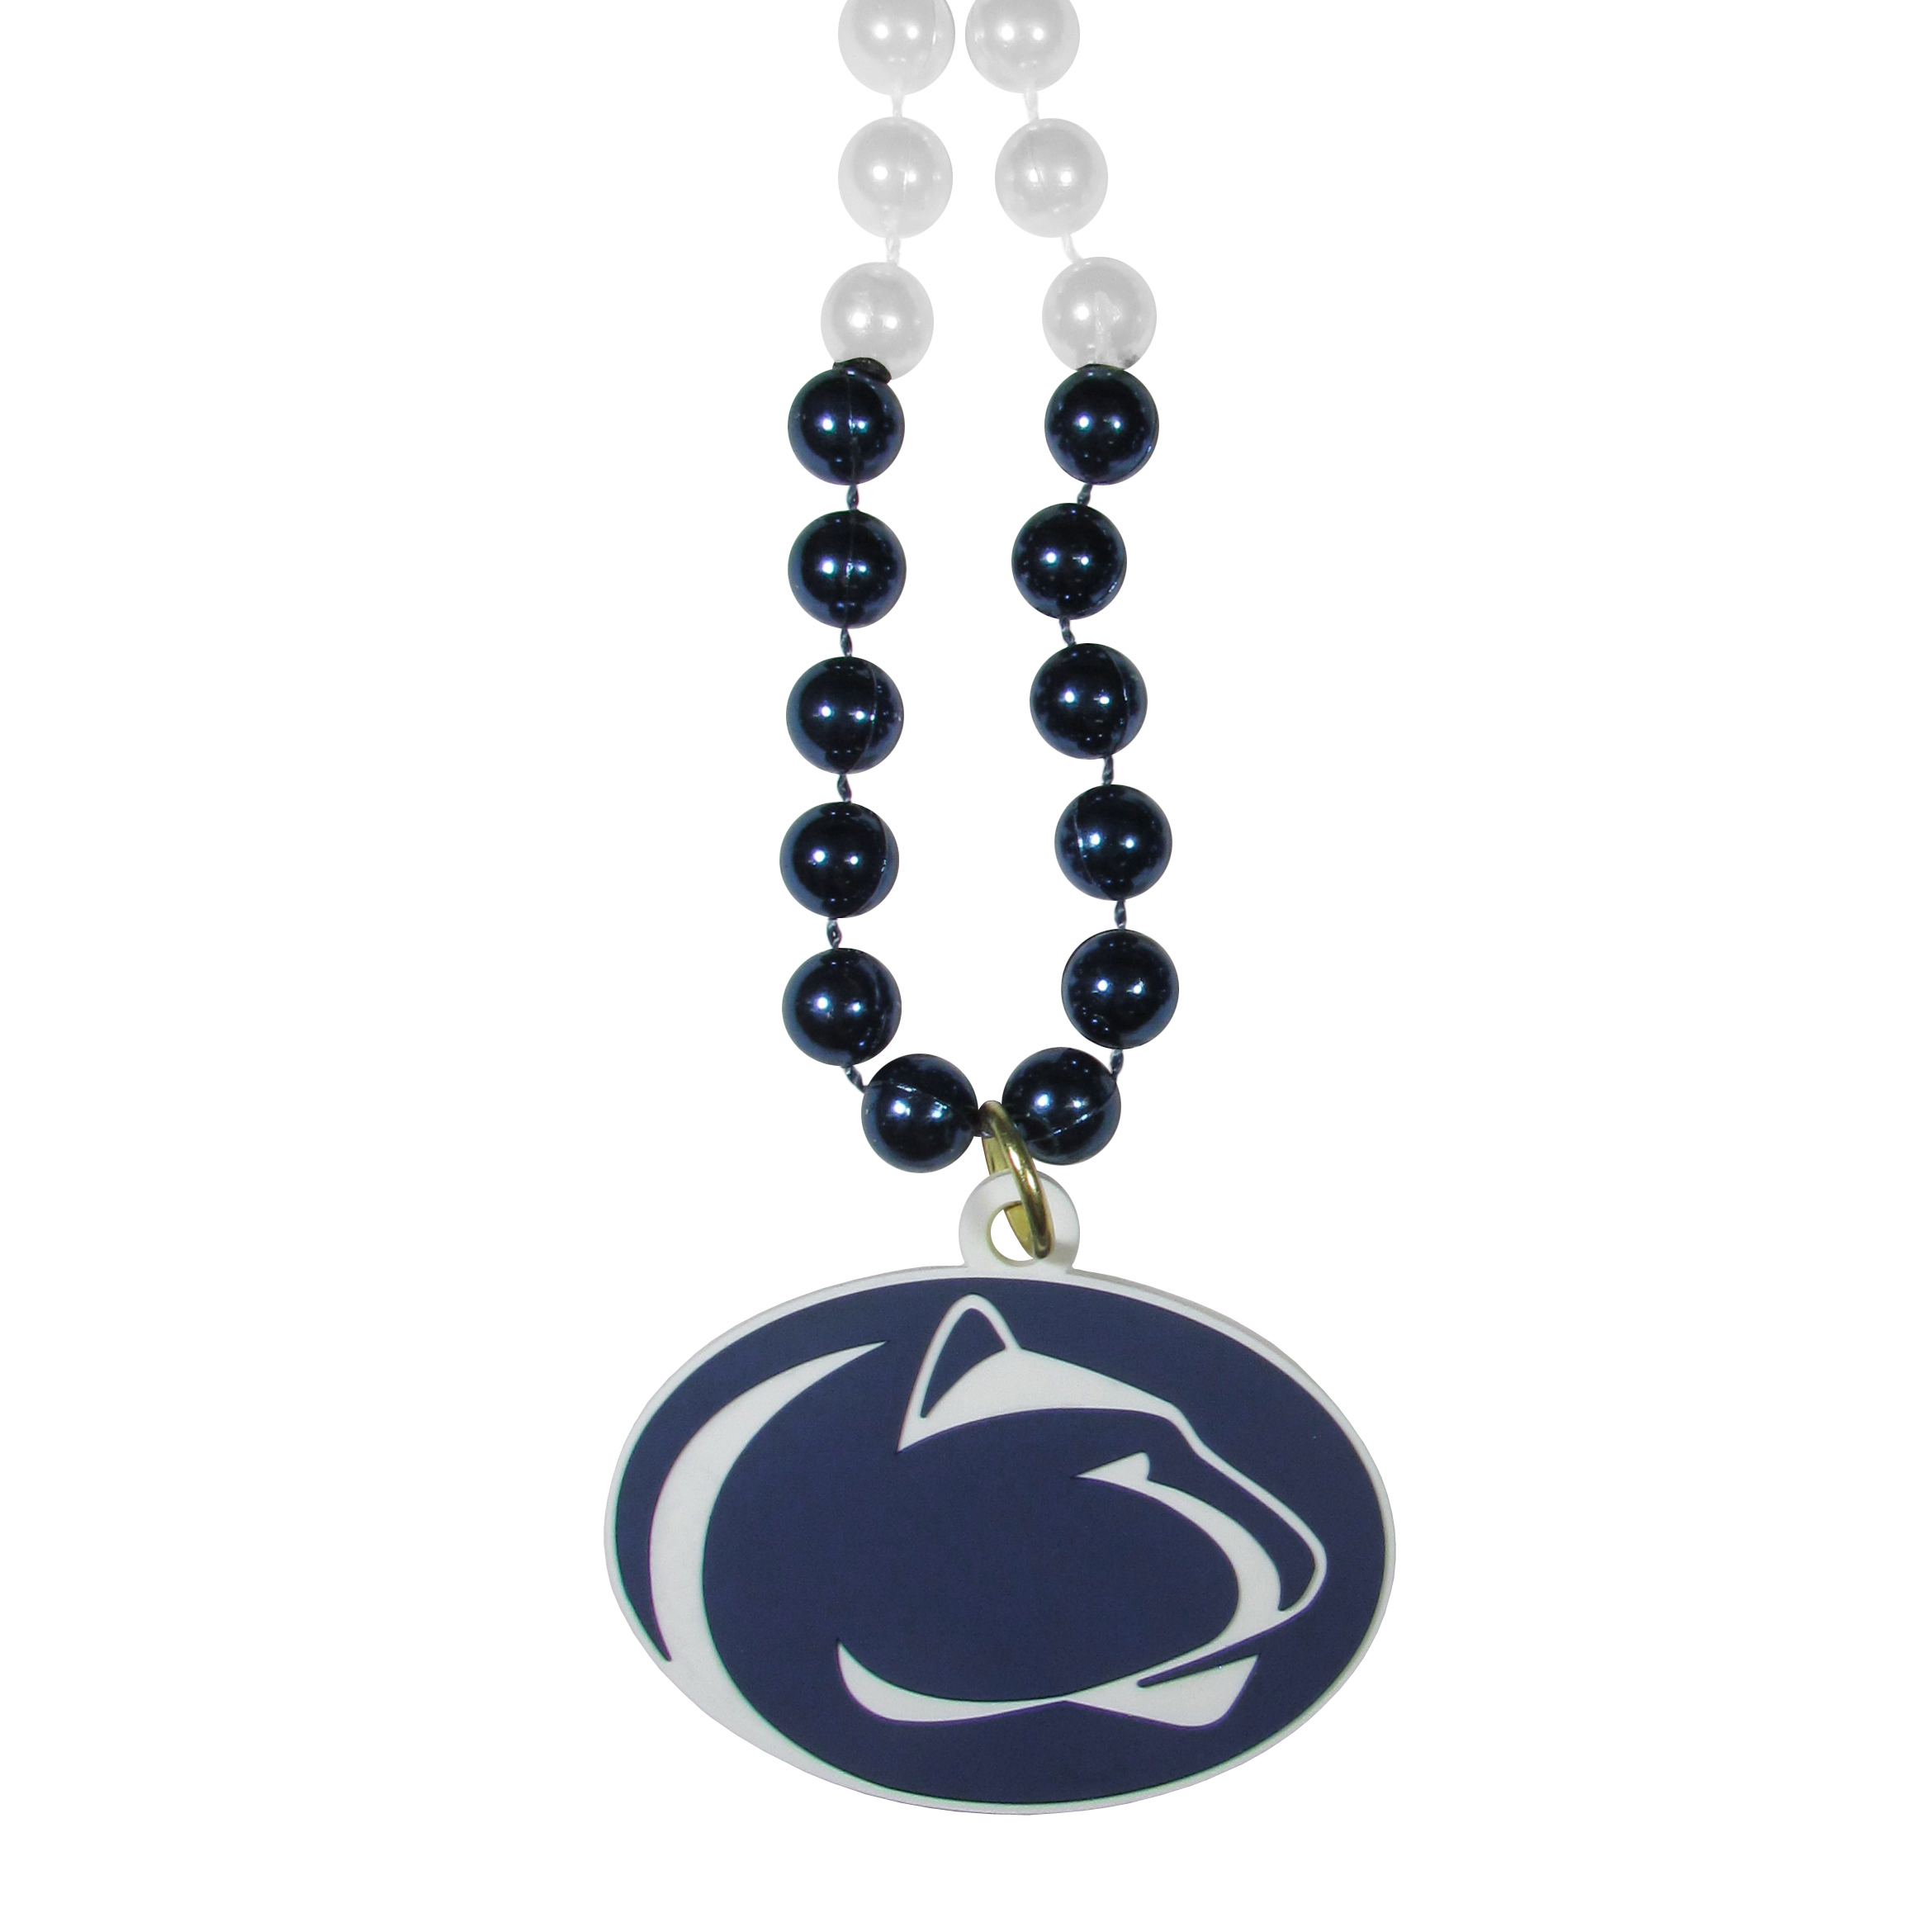 Penn St. Nittany Lions Mardi Gras Necklace - Get the party started with this Mardi Gras inspired bead necklace. The flashy beads have a shiny finish and come in bright team colors strung together on a 36 inch string so you can make a big statement on game day! The beads come with an extra large flexible team logo that is a full 3 inches at its widest point. This trendy and bold necklace screams out your Penn St. Nittany Lions pride and is a must have at game time!